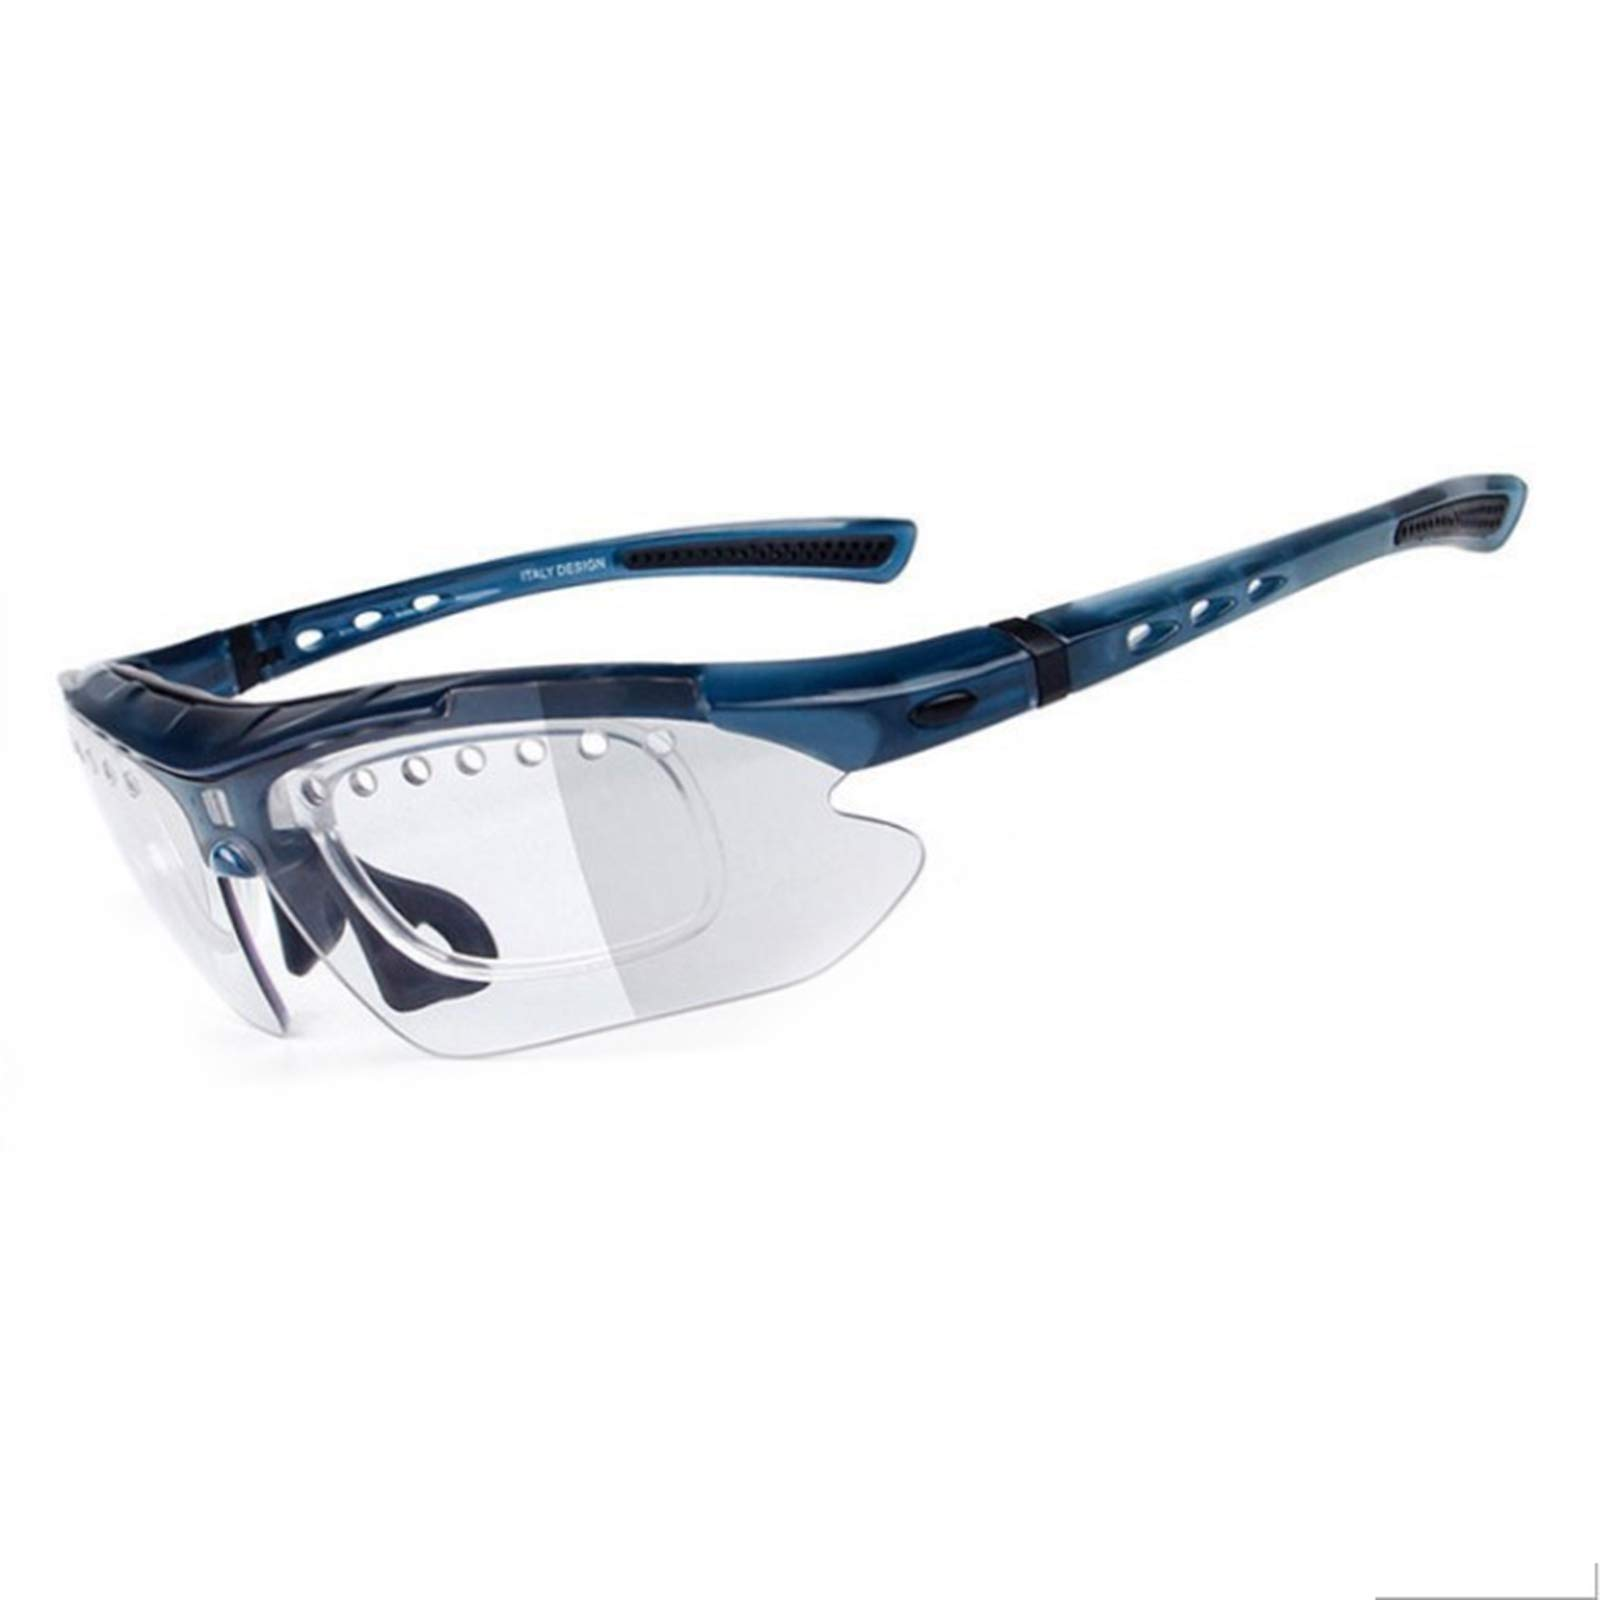 Adisaer Polarized Glasses Color Changing Luminous Night Vision Riding Running Mountain Bike Goggles Blue for Unisex-Adult